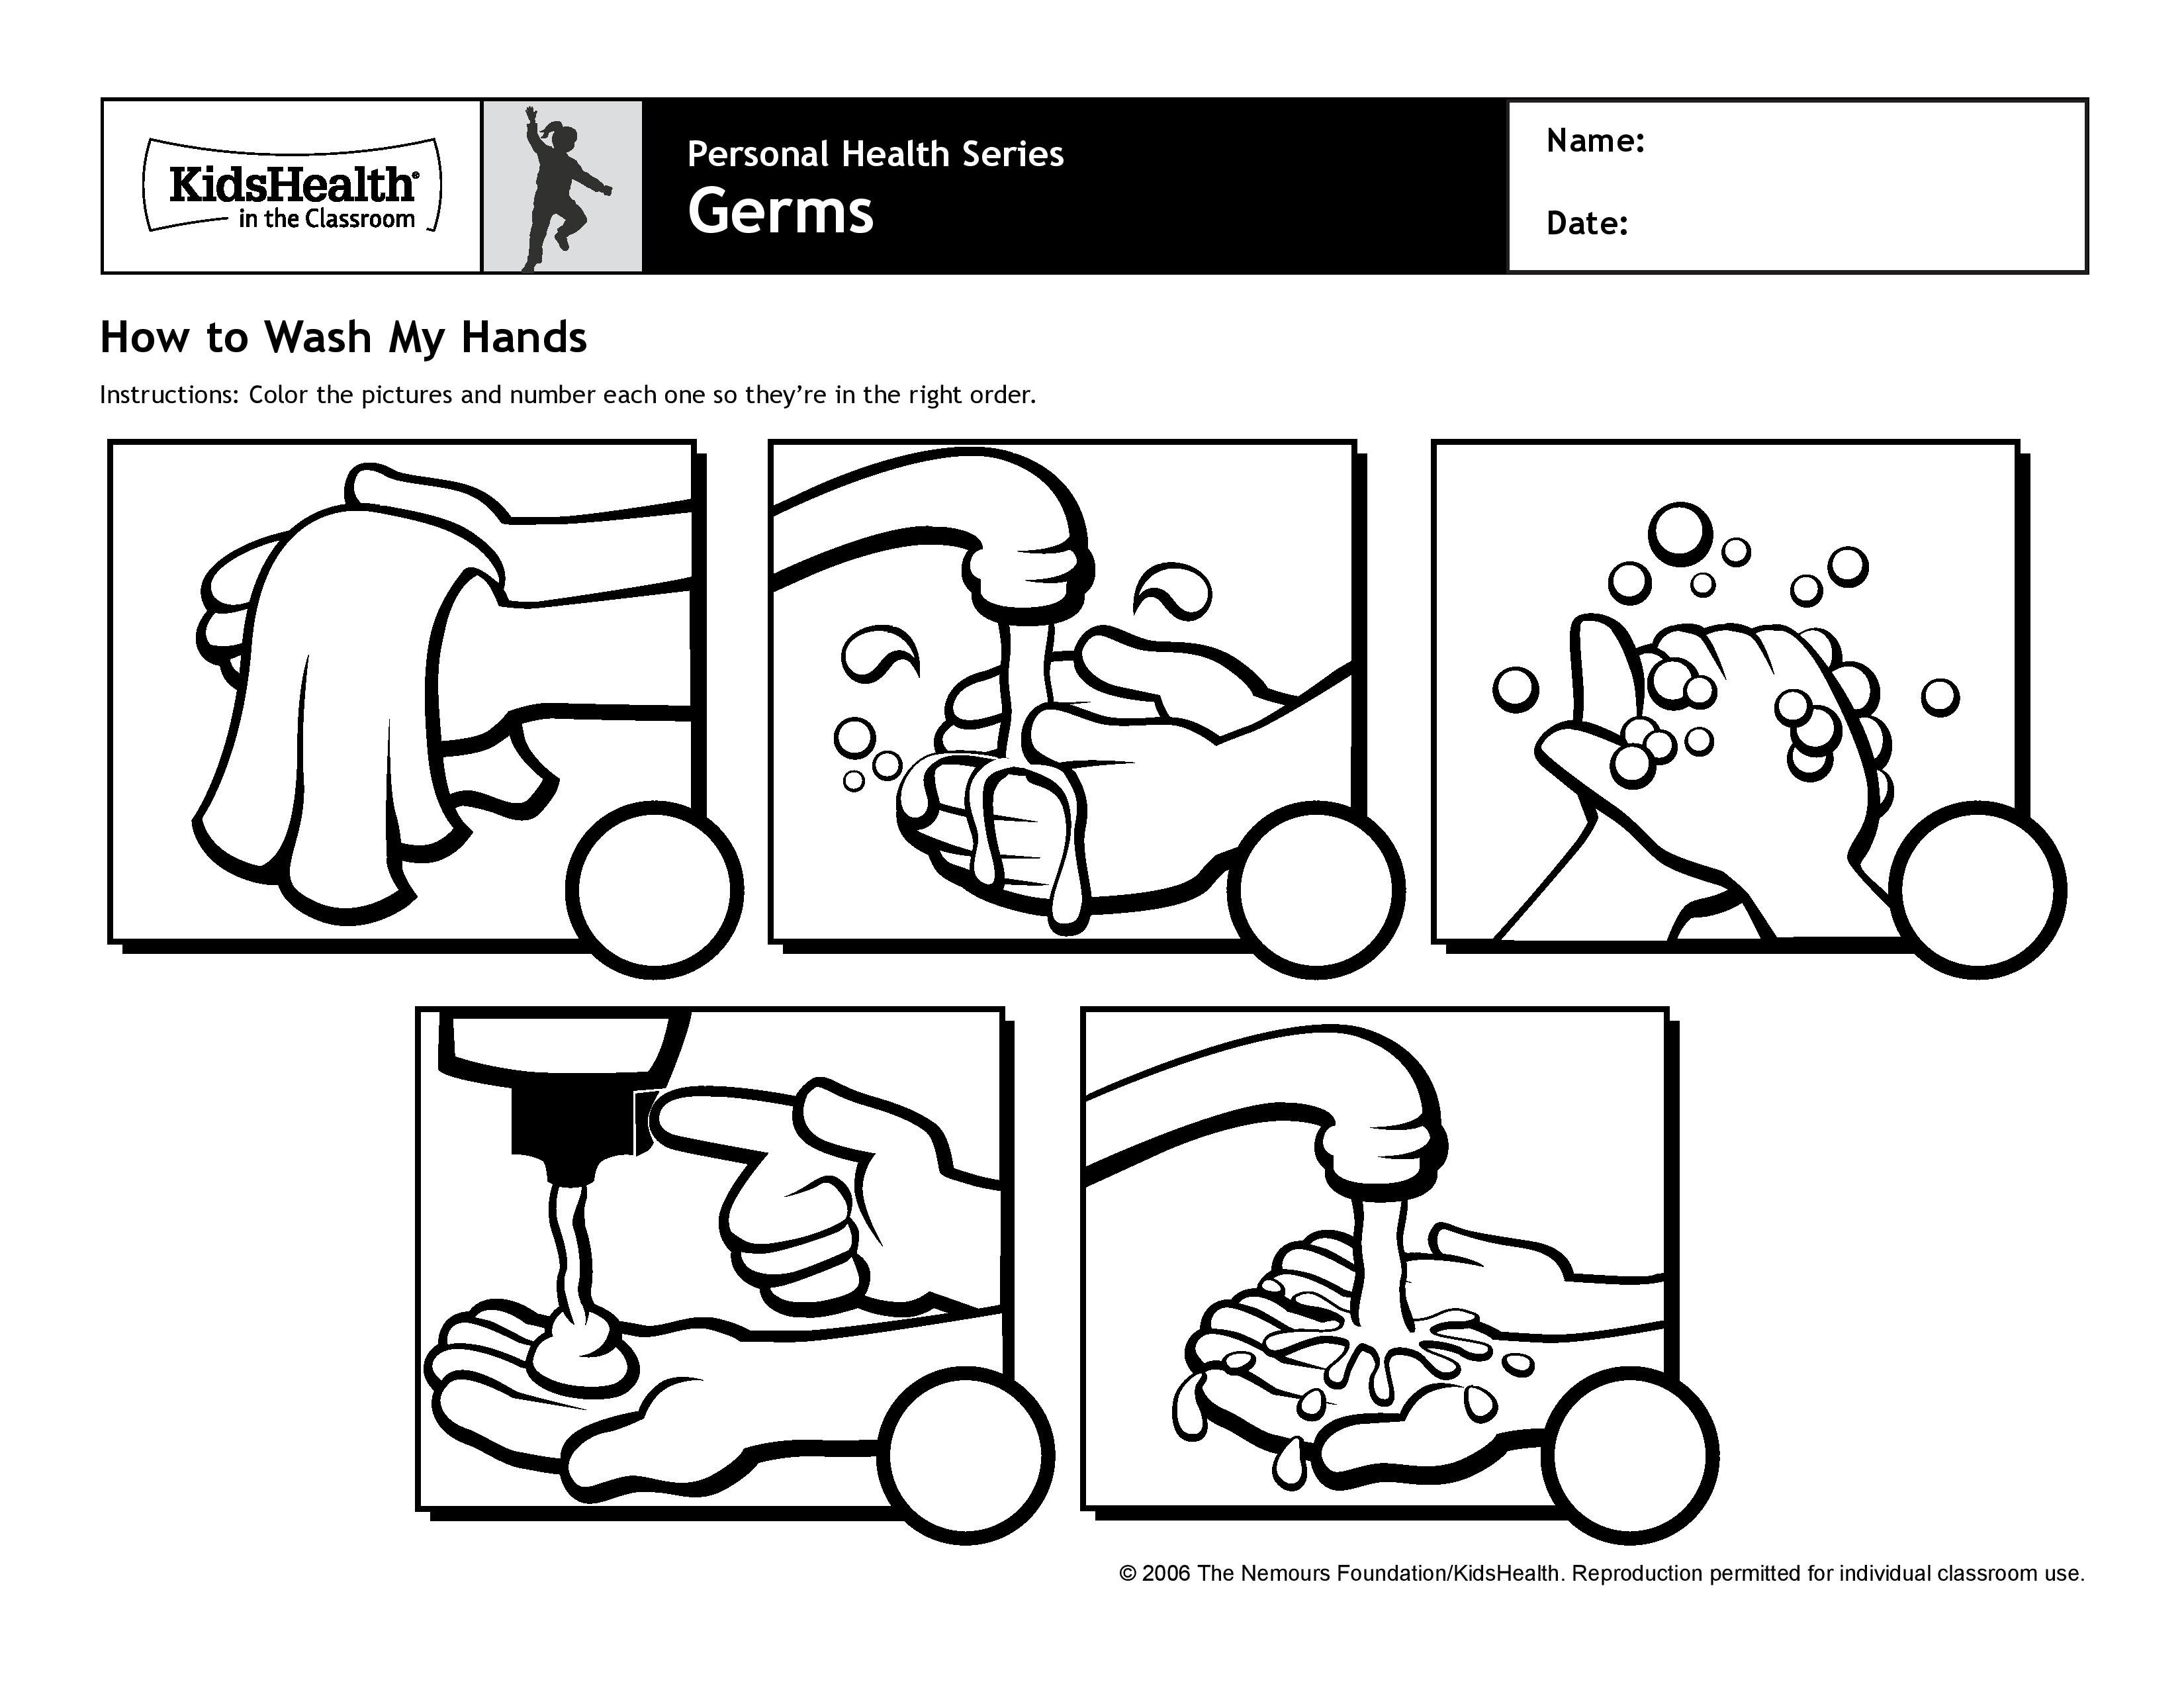 How To Wash My Hands Worksheet For Kids  Personal Hygiene With Regard To Hand Washing Worksheets